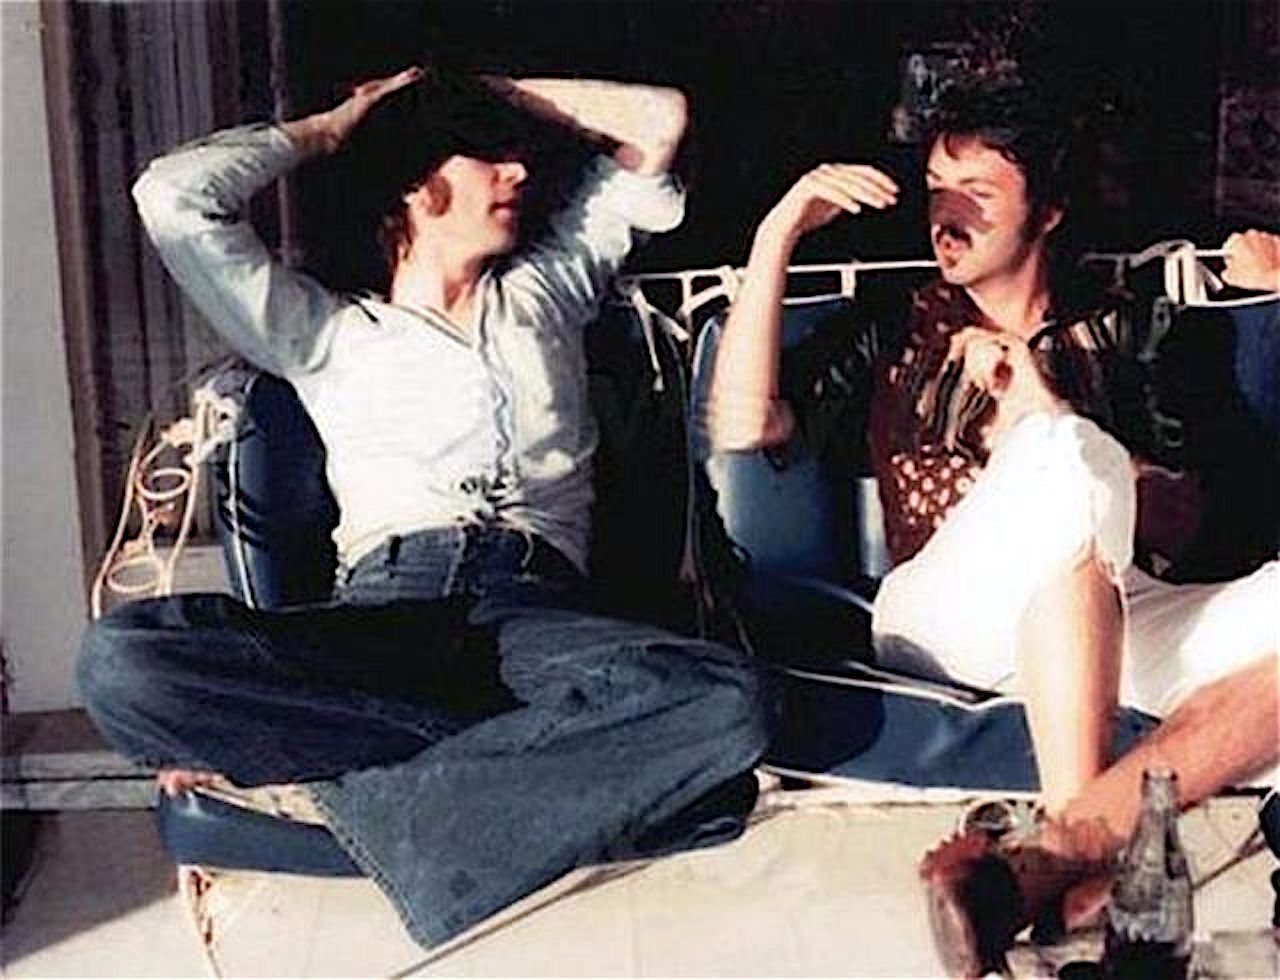 Last Known Photos of John Lennon and Paul McCartney Together in 1974 |  Vintage News Daily